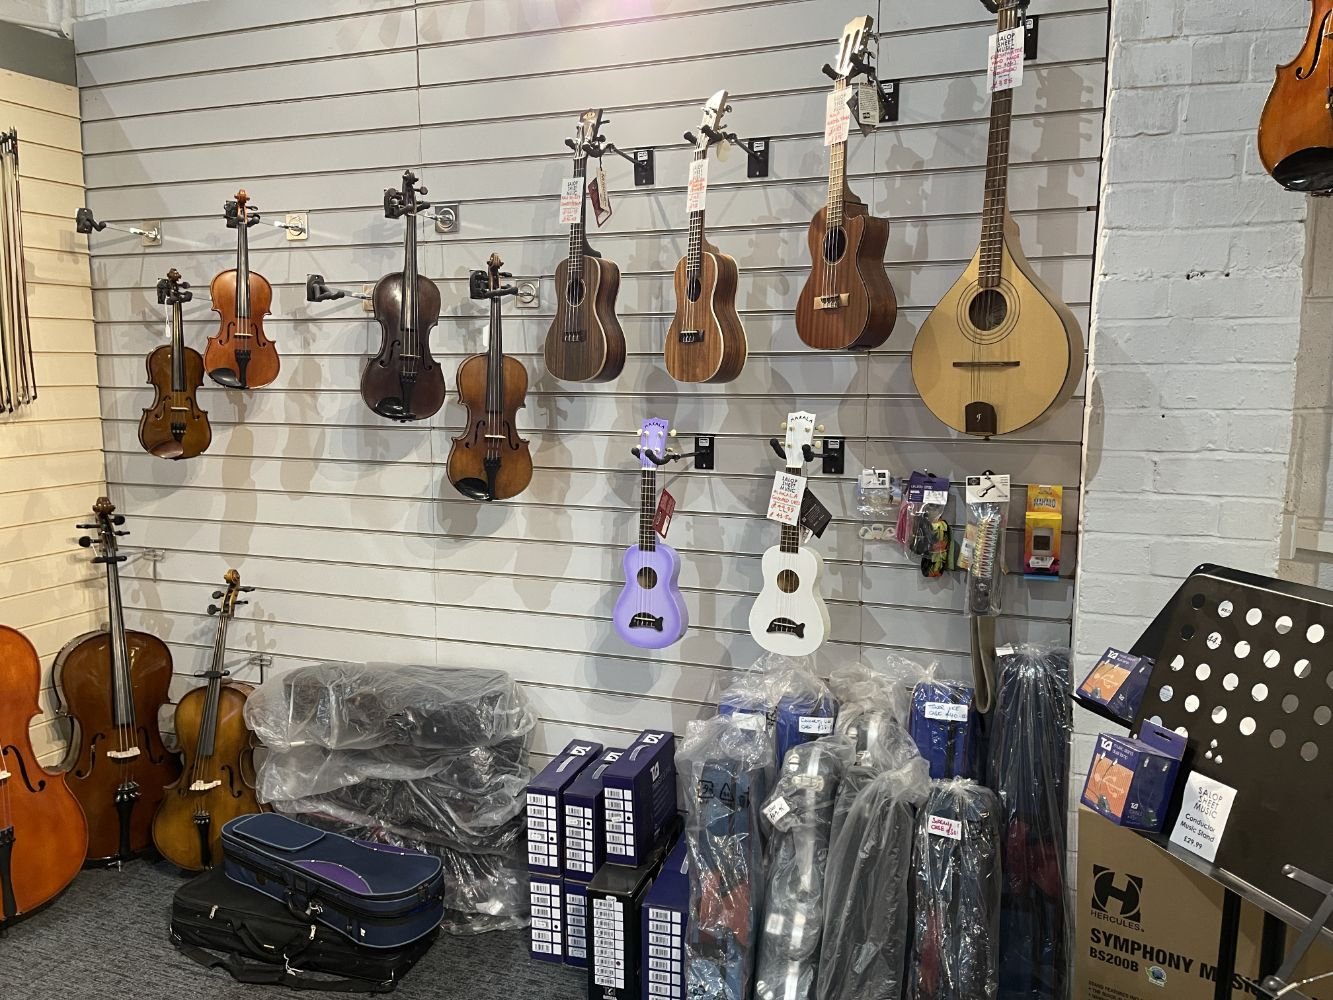 Salop Sheet Music In Proposed Liquidation - Large Selection of String Instruments, Music Books, Instrument Accessories and Shop Fittings